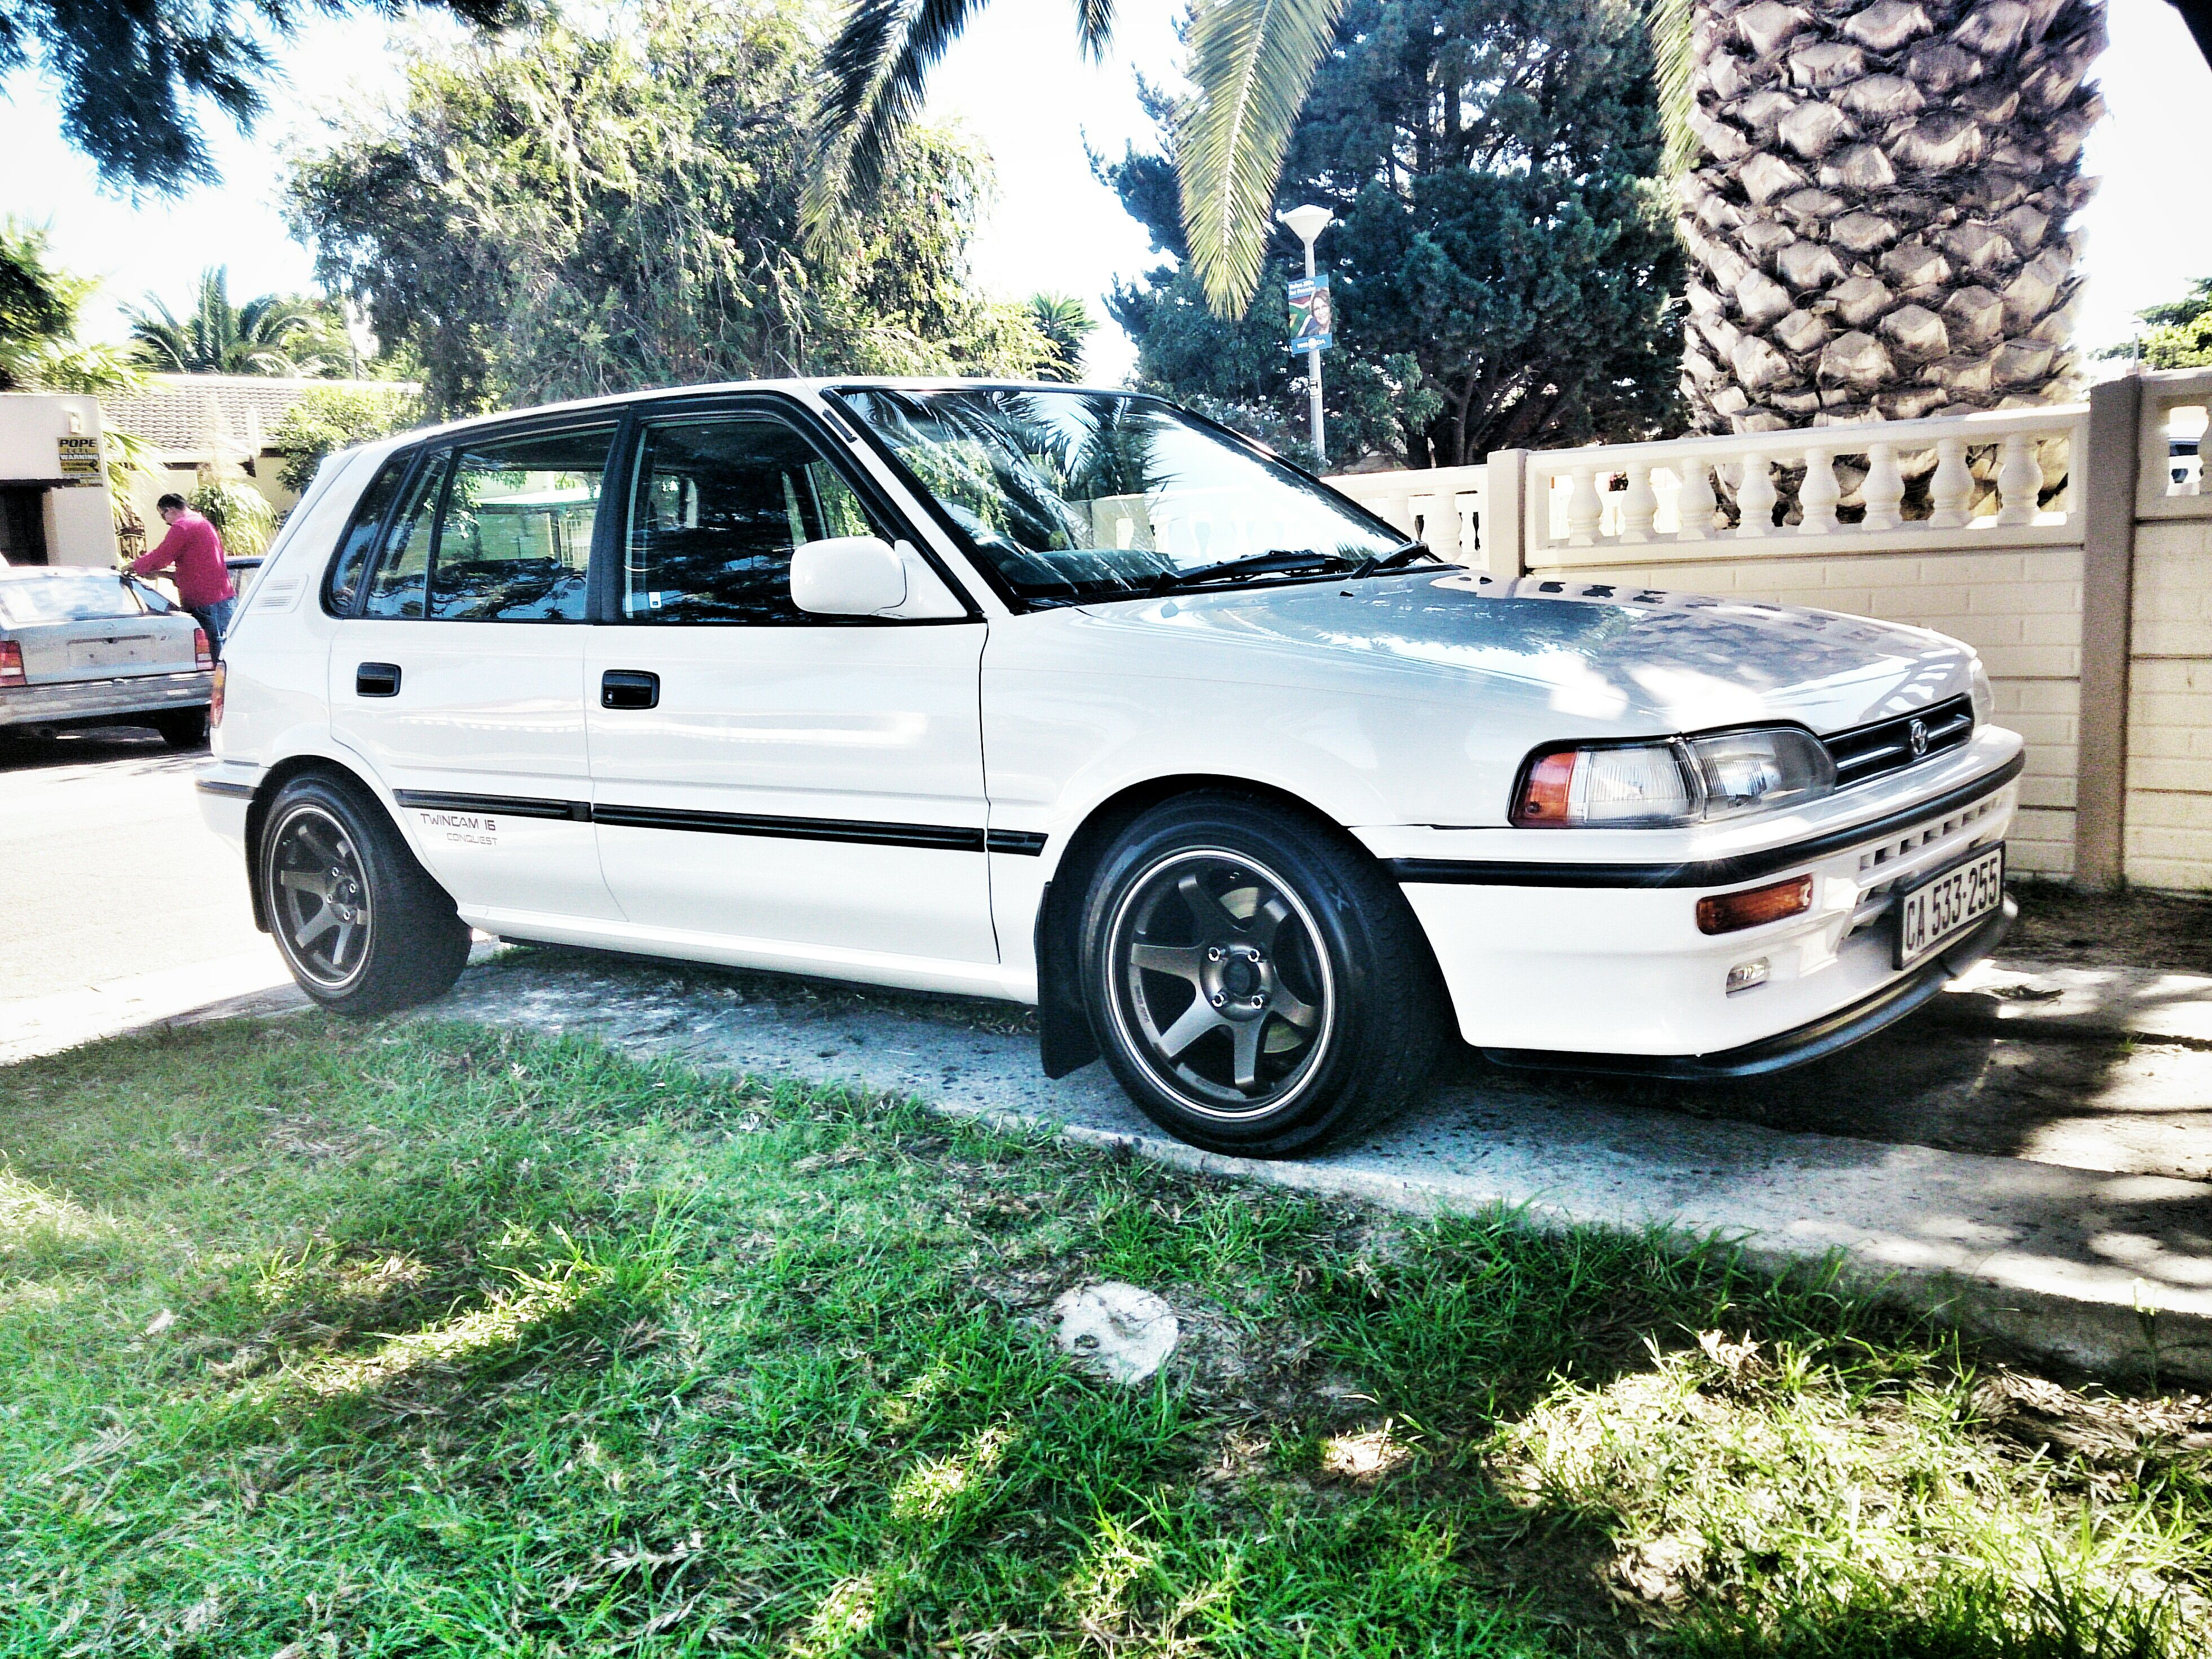 hight resolution of my ae92 toyota corolla jdm cool cars cars and motorcycles automobile